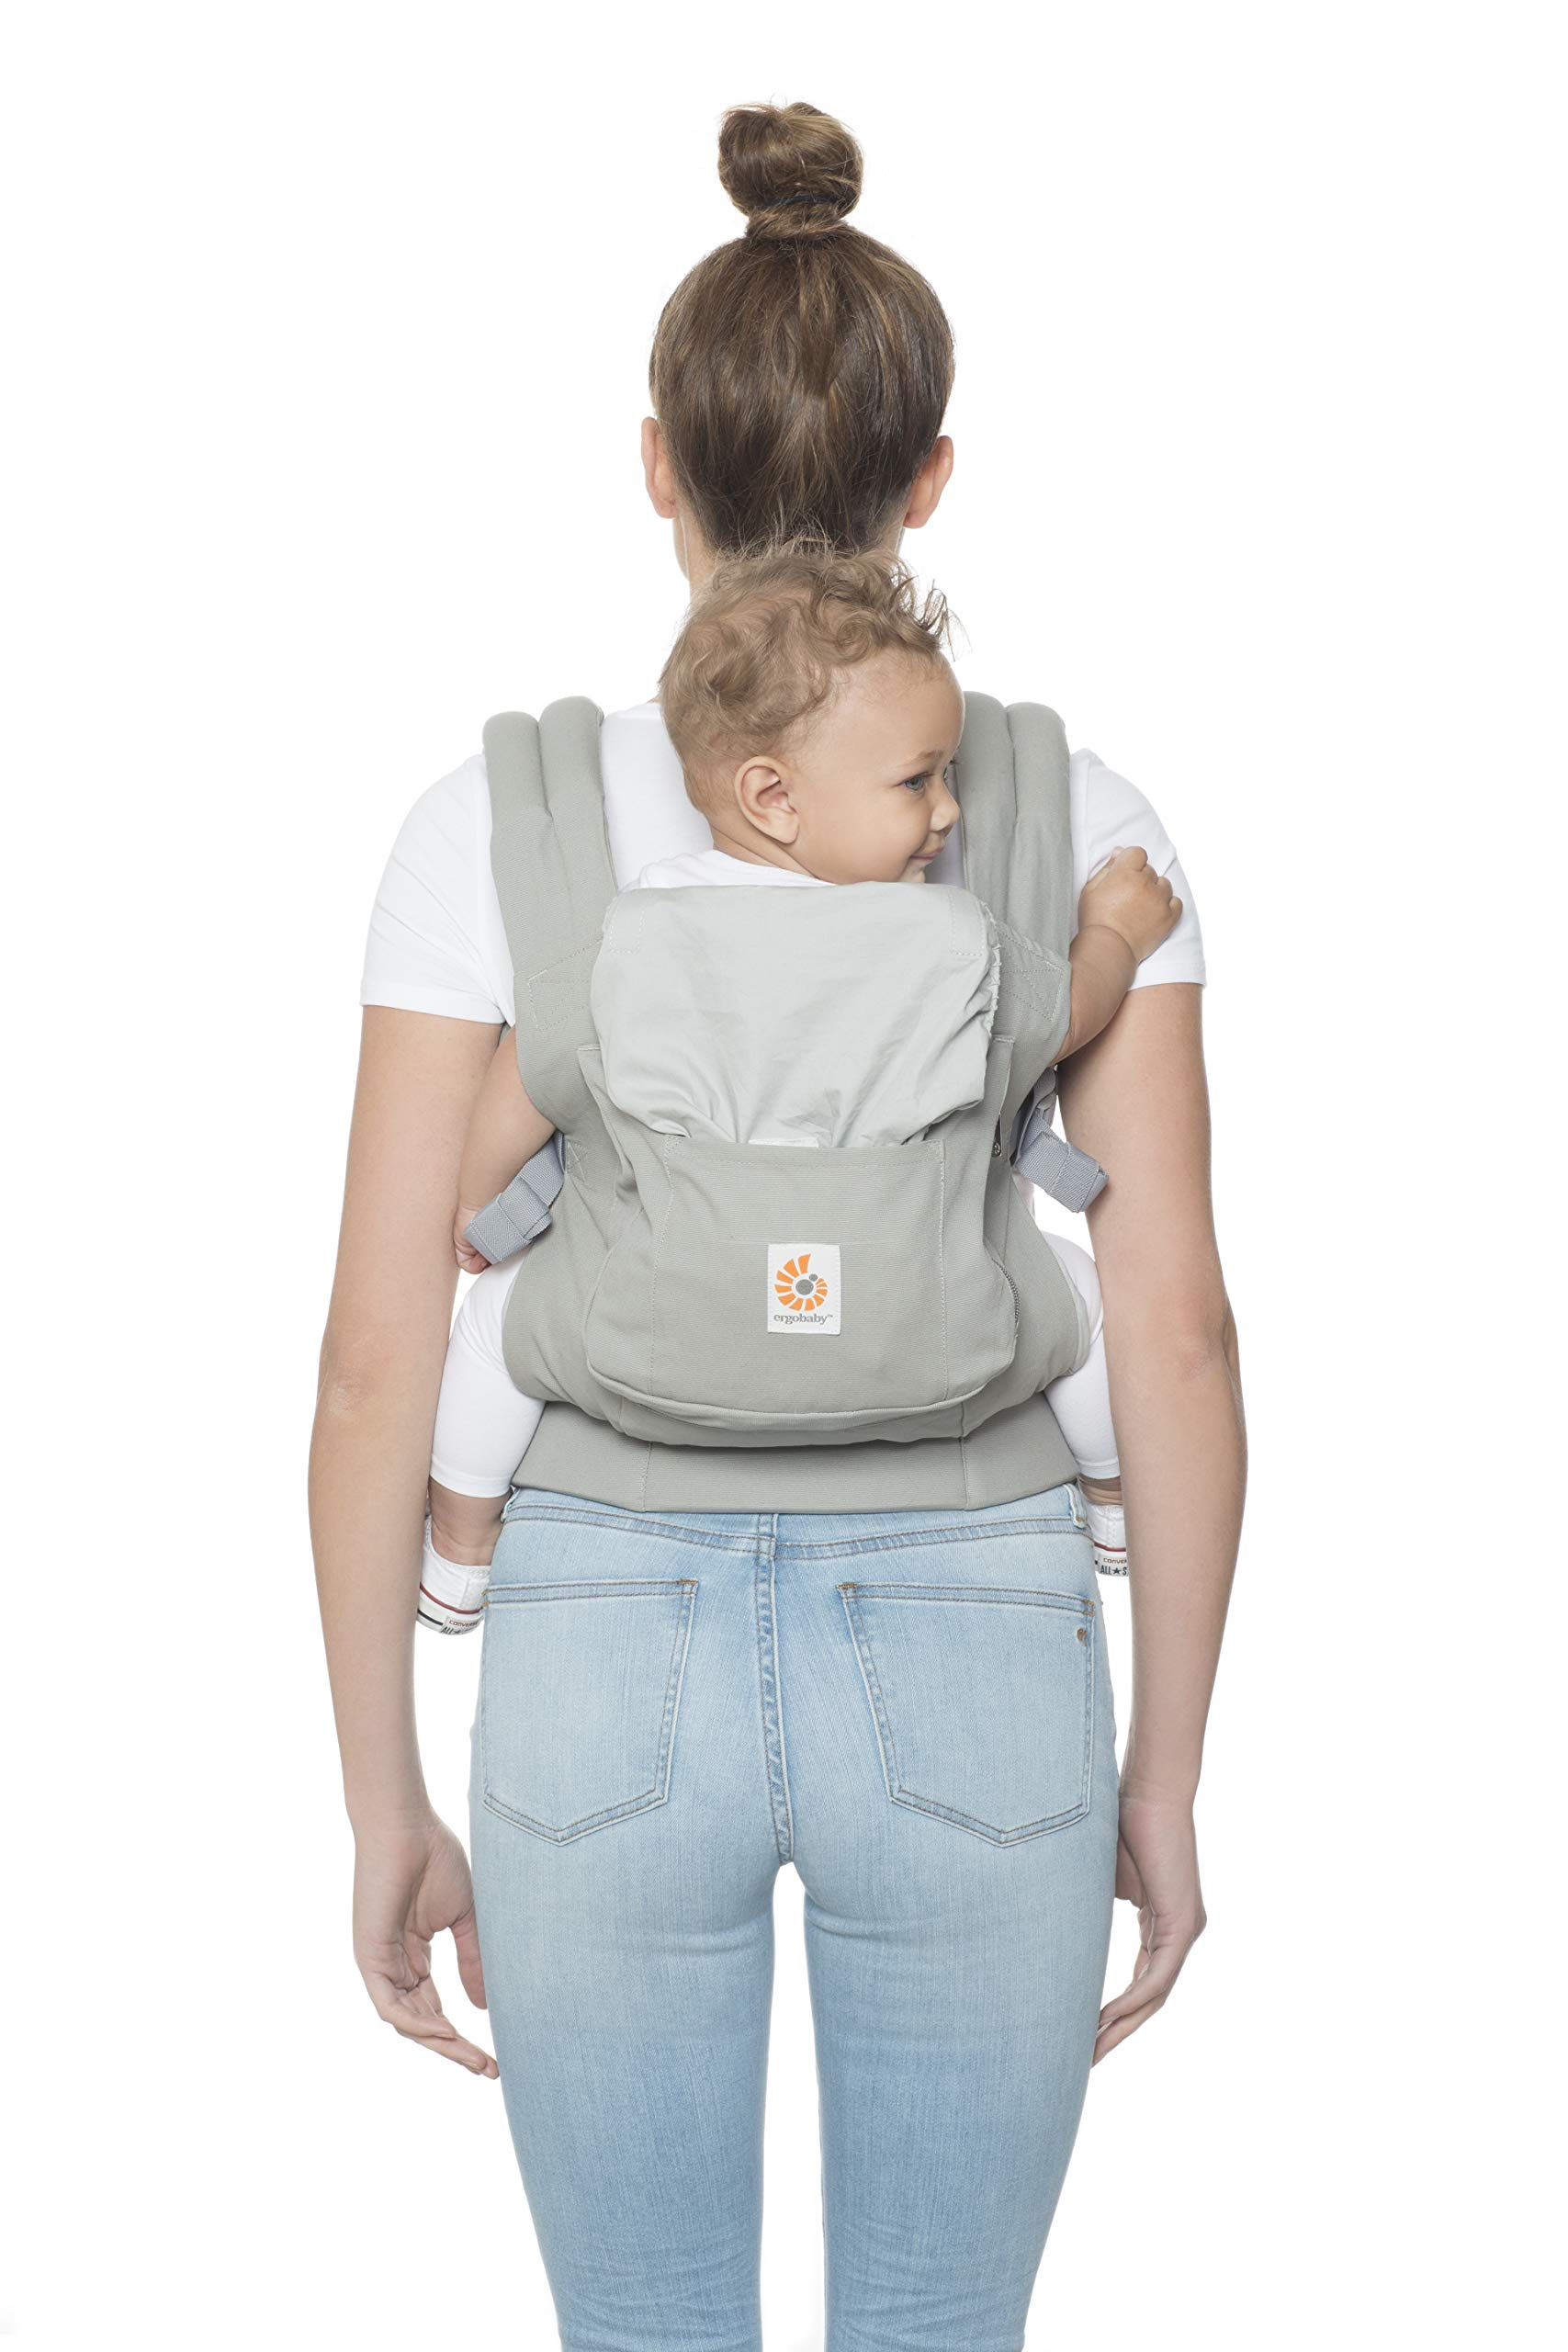 """Ergobaby Front and Back Original Baby Carrier, Pearl Grey Ergobaby Ergonomic babycarrier - ergonomic for baby with wide deep seat for a spread-squat, natural """"m"""" seated position. Baby carrying system with 3carry positions:  front-inward, hip and back. from baby to toddler: 5.5*-20kg Maximum wearing comfort - lumbar support waist belt (adjustable from 66-140cm / 26-52in) that can be adjusted to the height of the carry position. 9"""